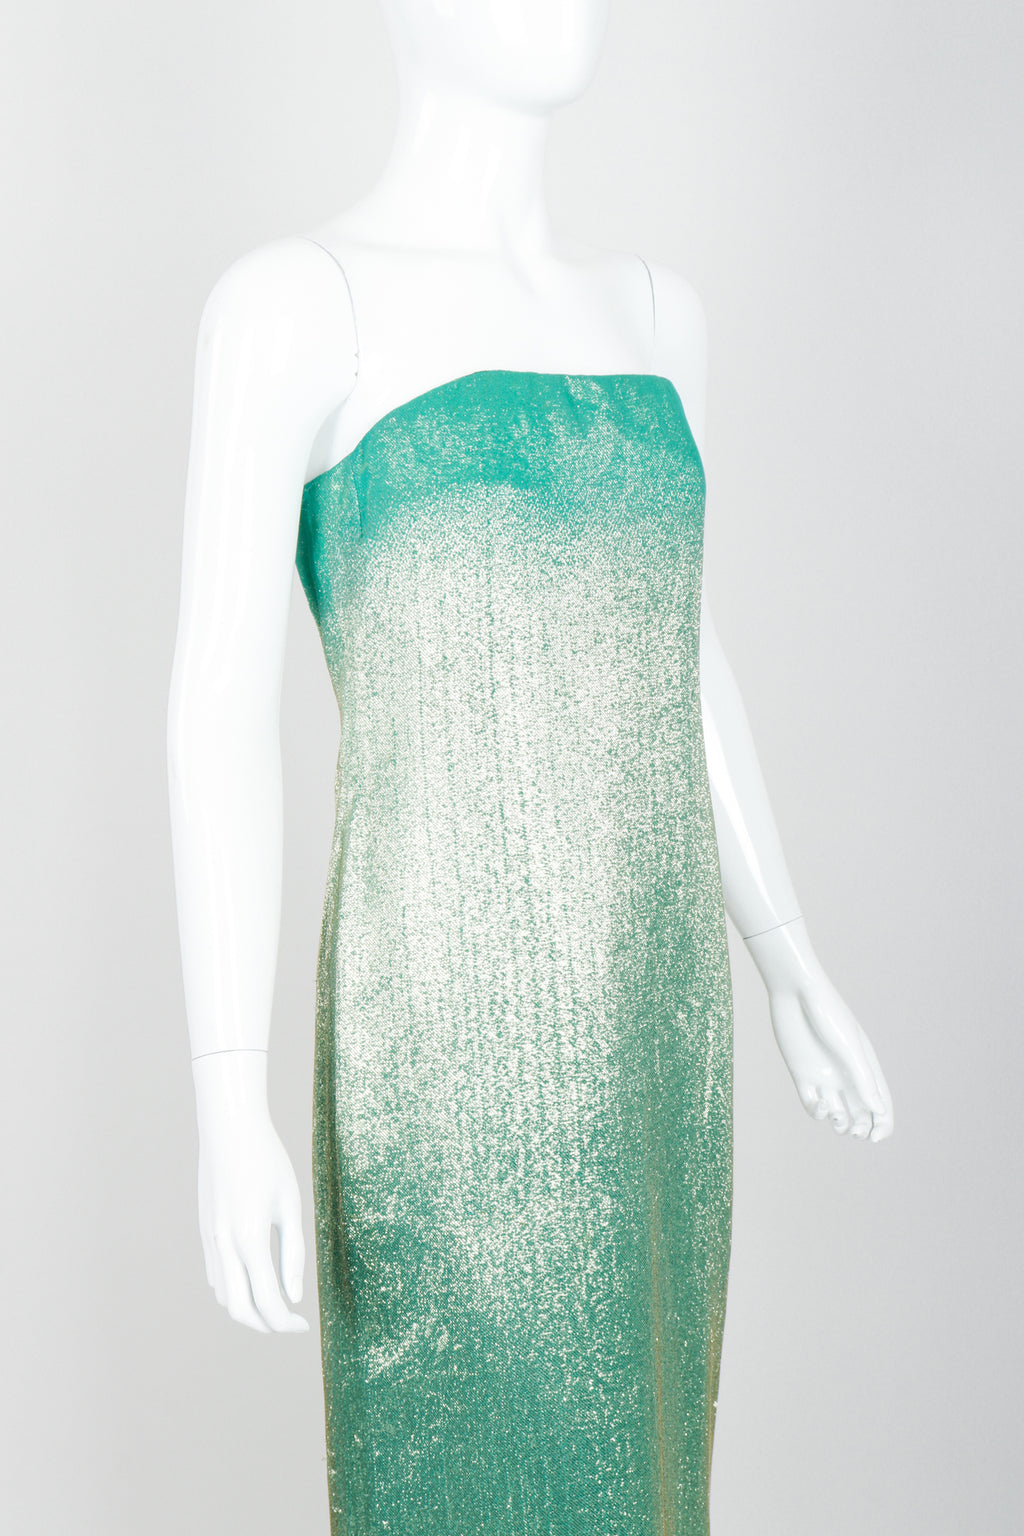 Vintage Ruben Panis Mermaid Ombré Lamé Strapless Gown on mannequin angle crop at Recess